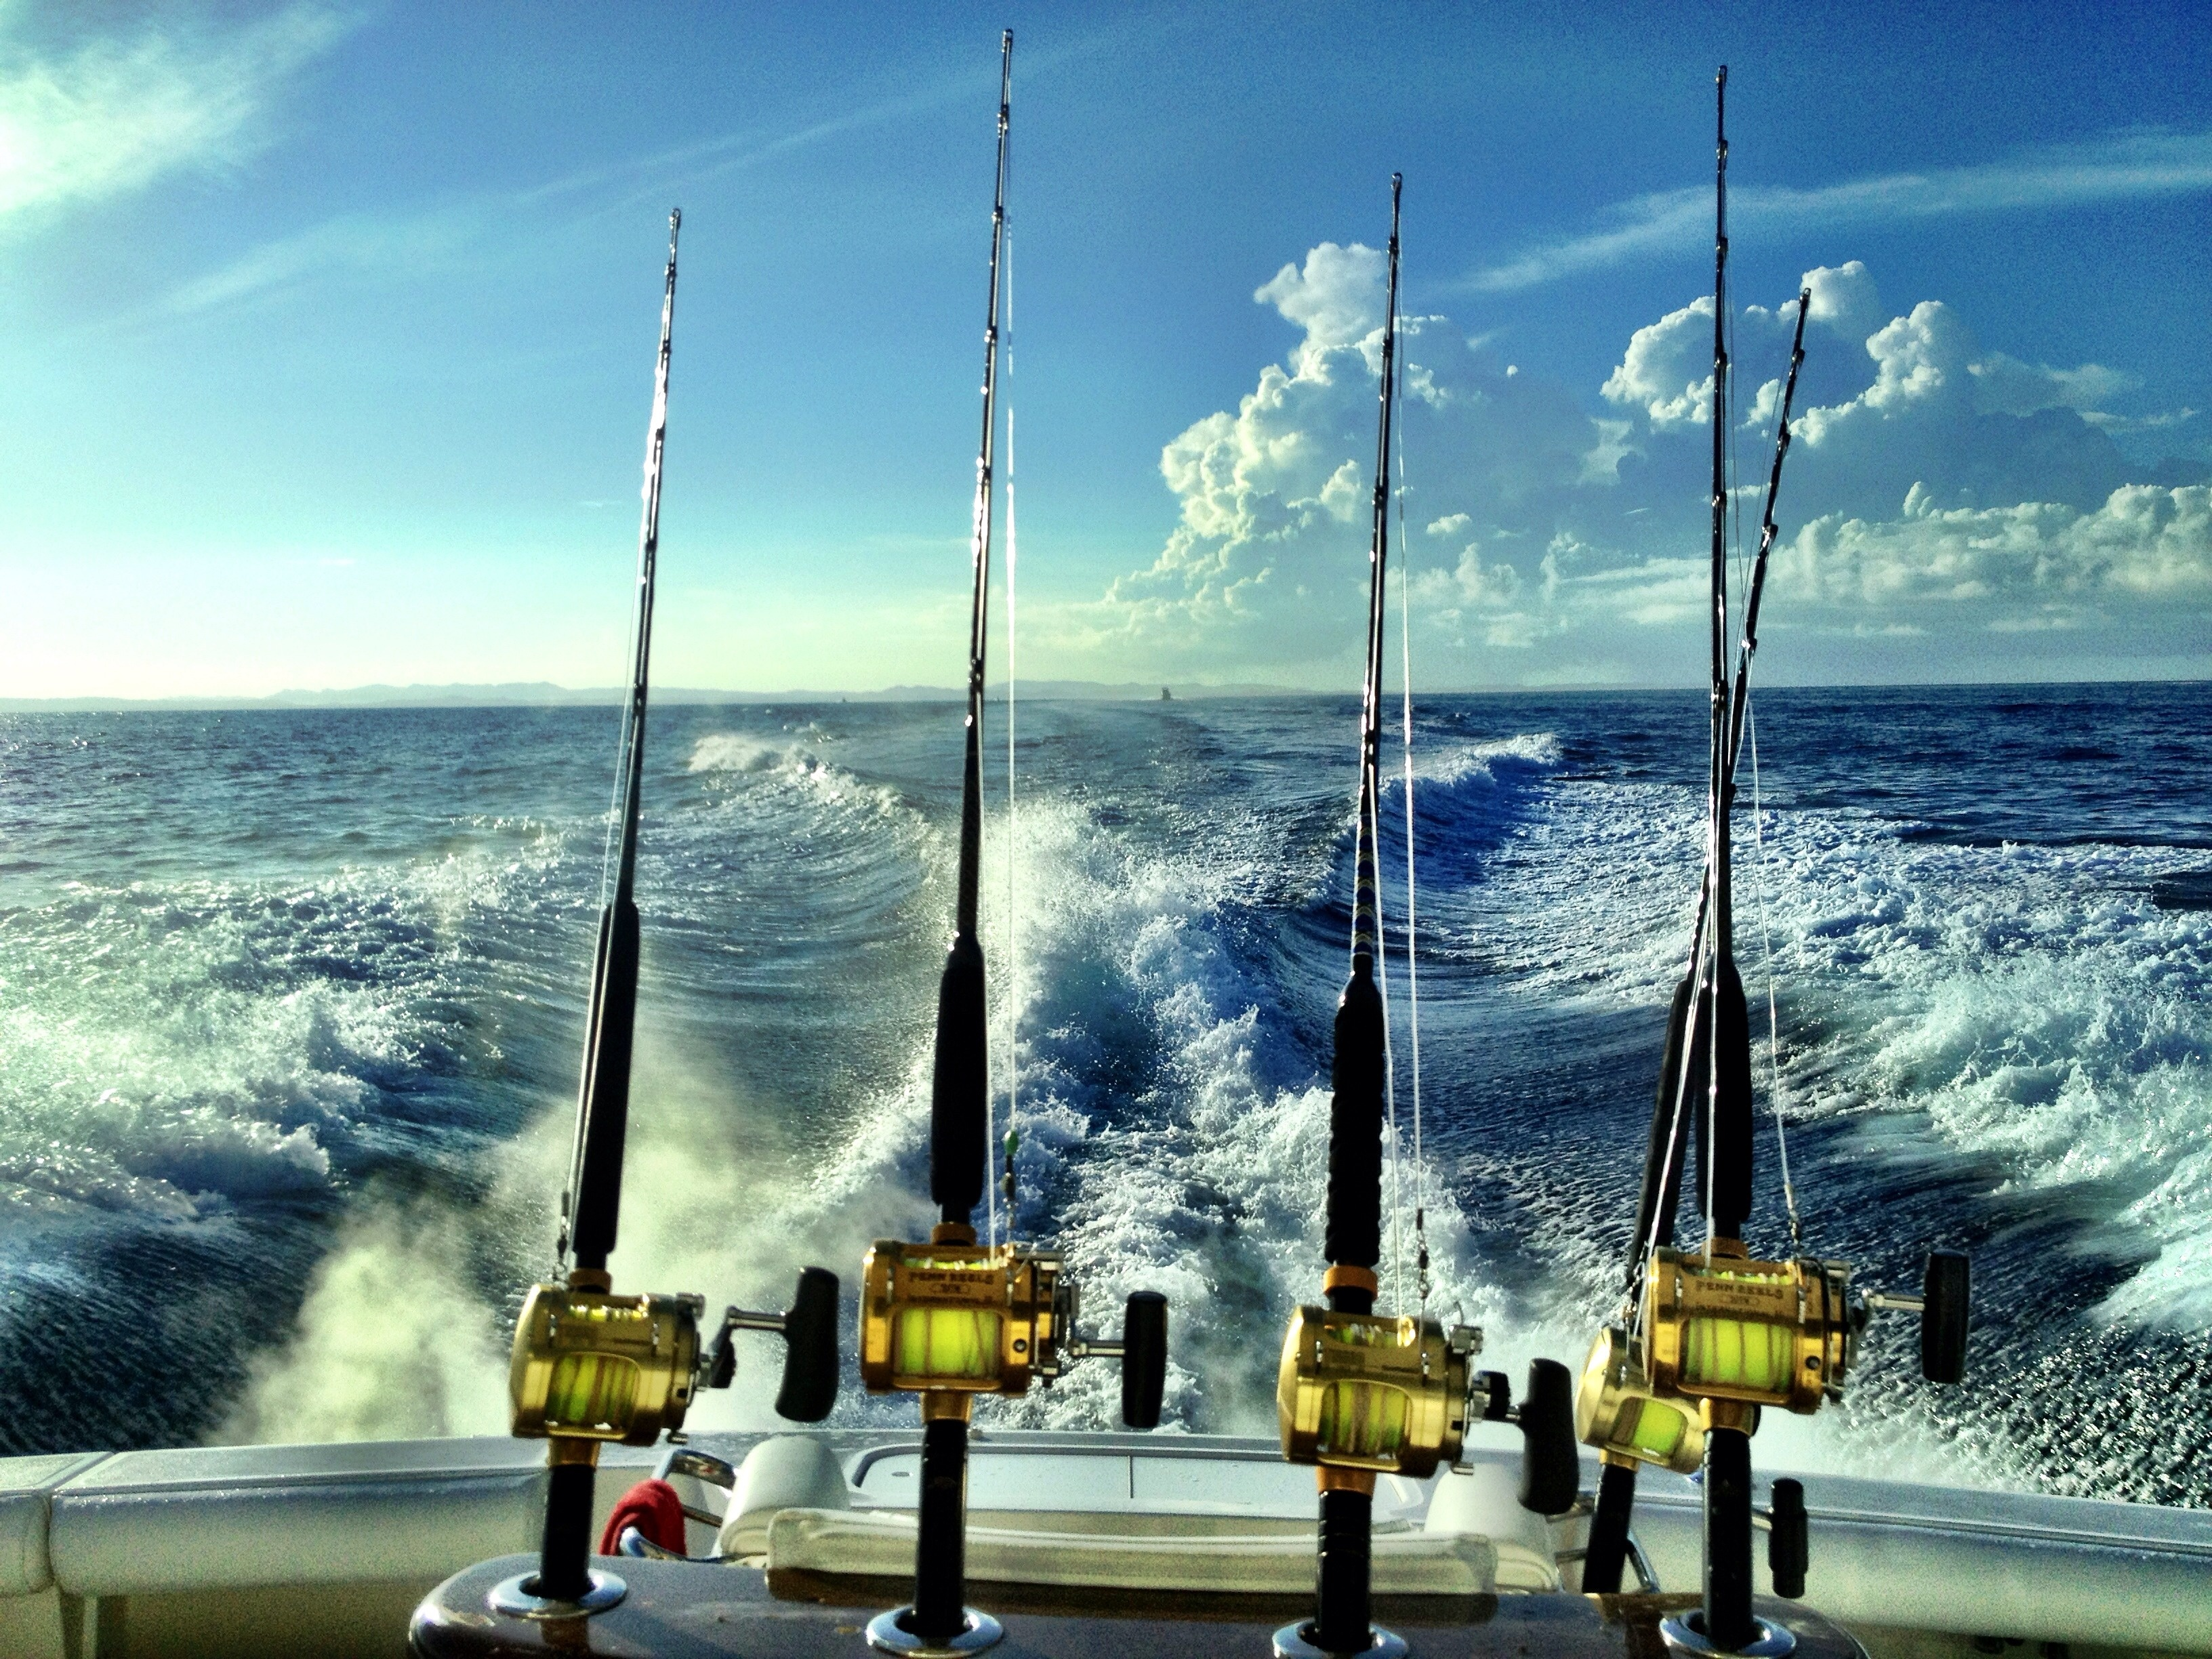 Offshore fishing fishing charters guide info for Off shore fishing boats